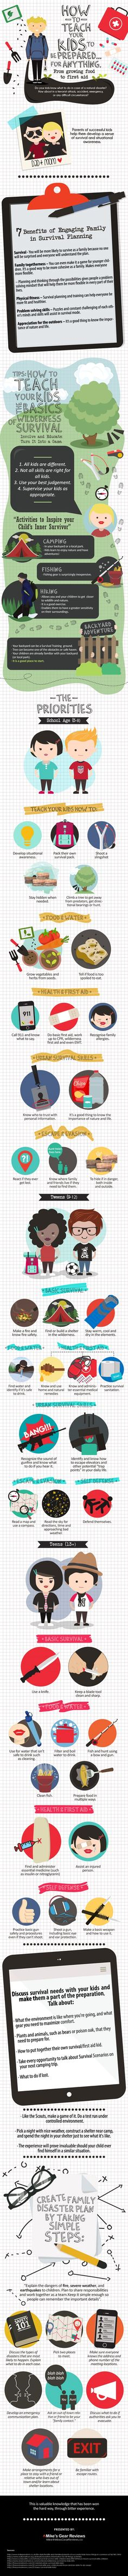 How to Teach Your Kids to be Prepared for Anything Infographic - e-Learning Infographics Survival Blog, Survival Skills, Life Skills, Life Lessons, Teachers Aide, Emergency Medicine, Natural Disasters, Emergency Preparedness, Educational Technology